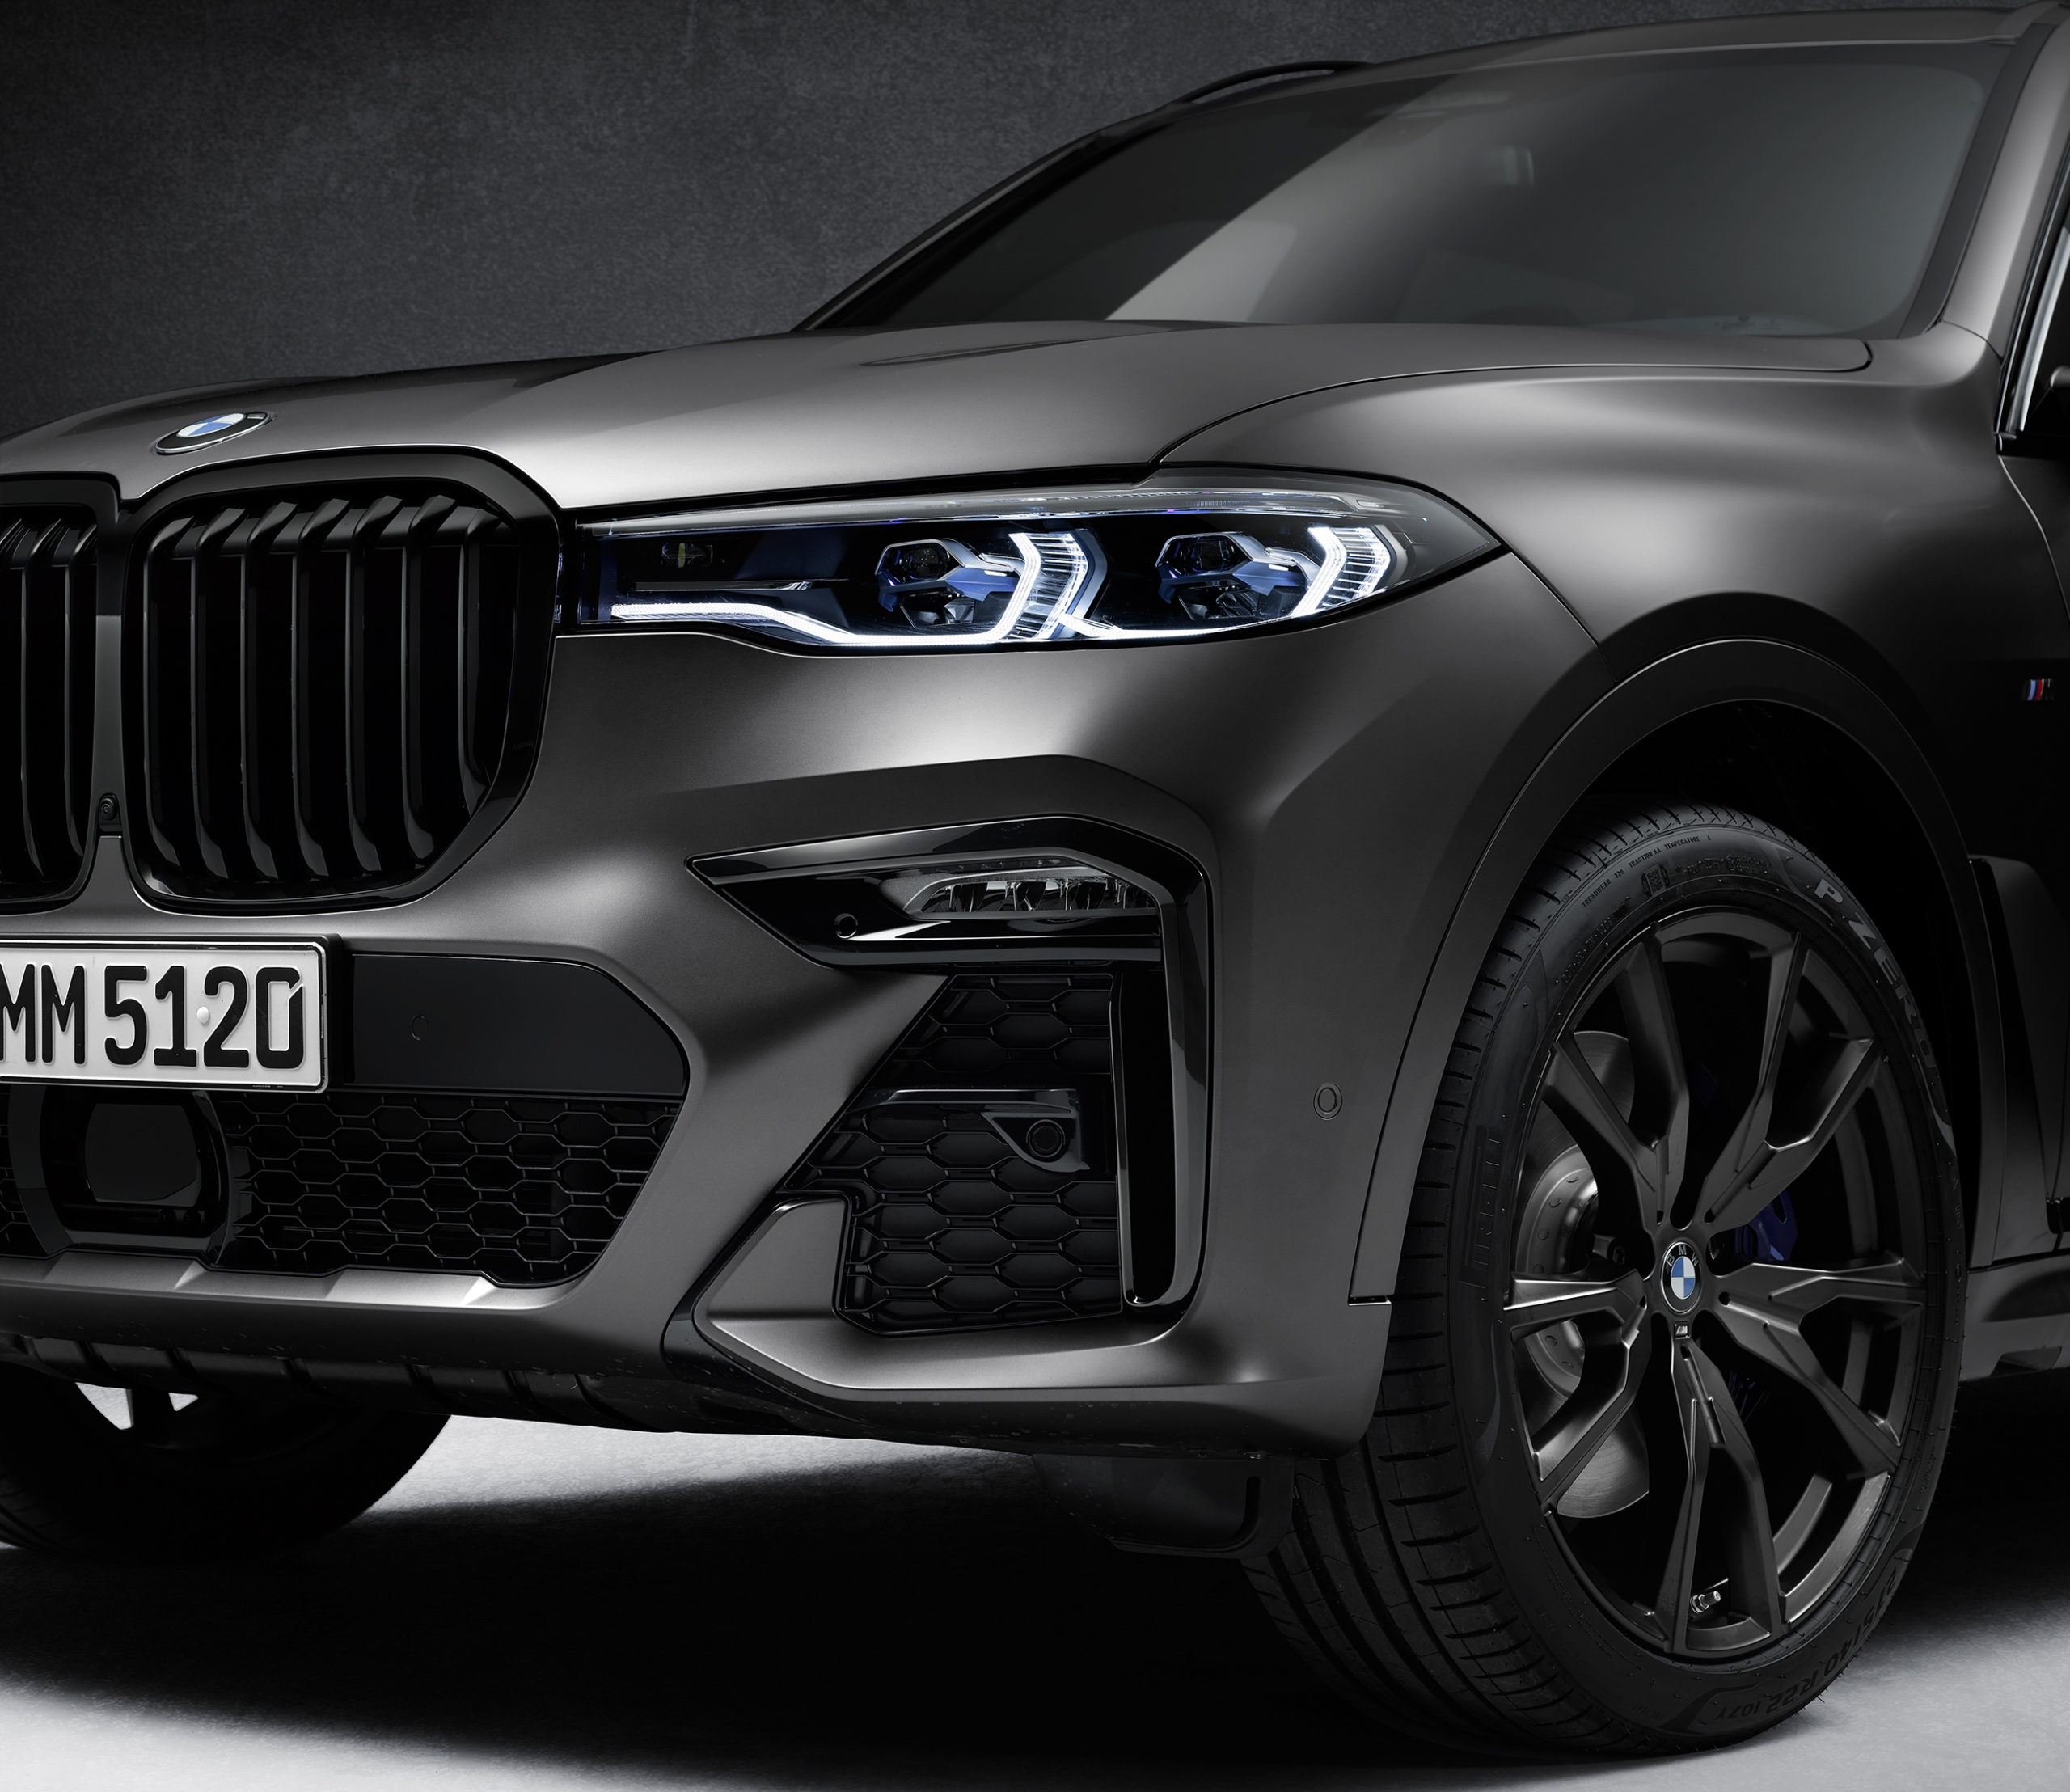 In Pictures: The New BMW X7 Dark Shadow Edition!